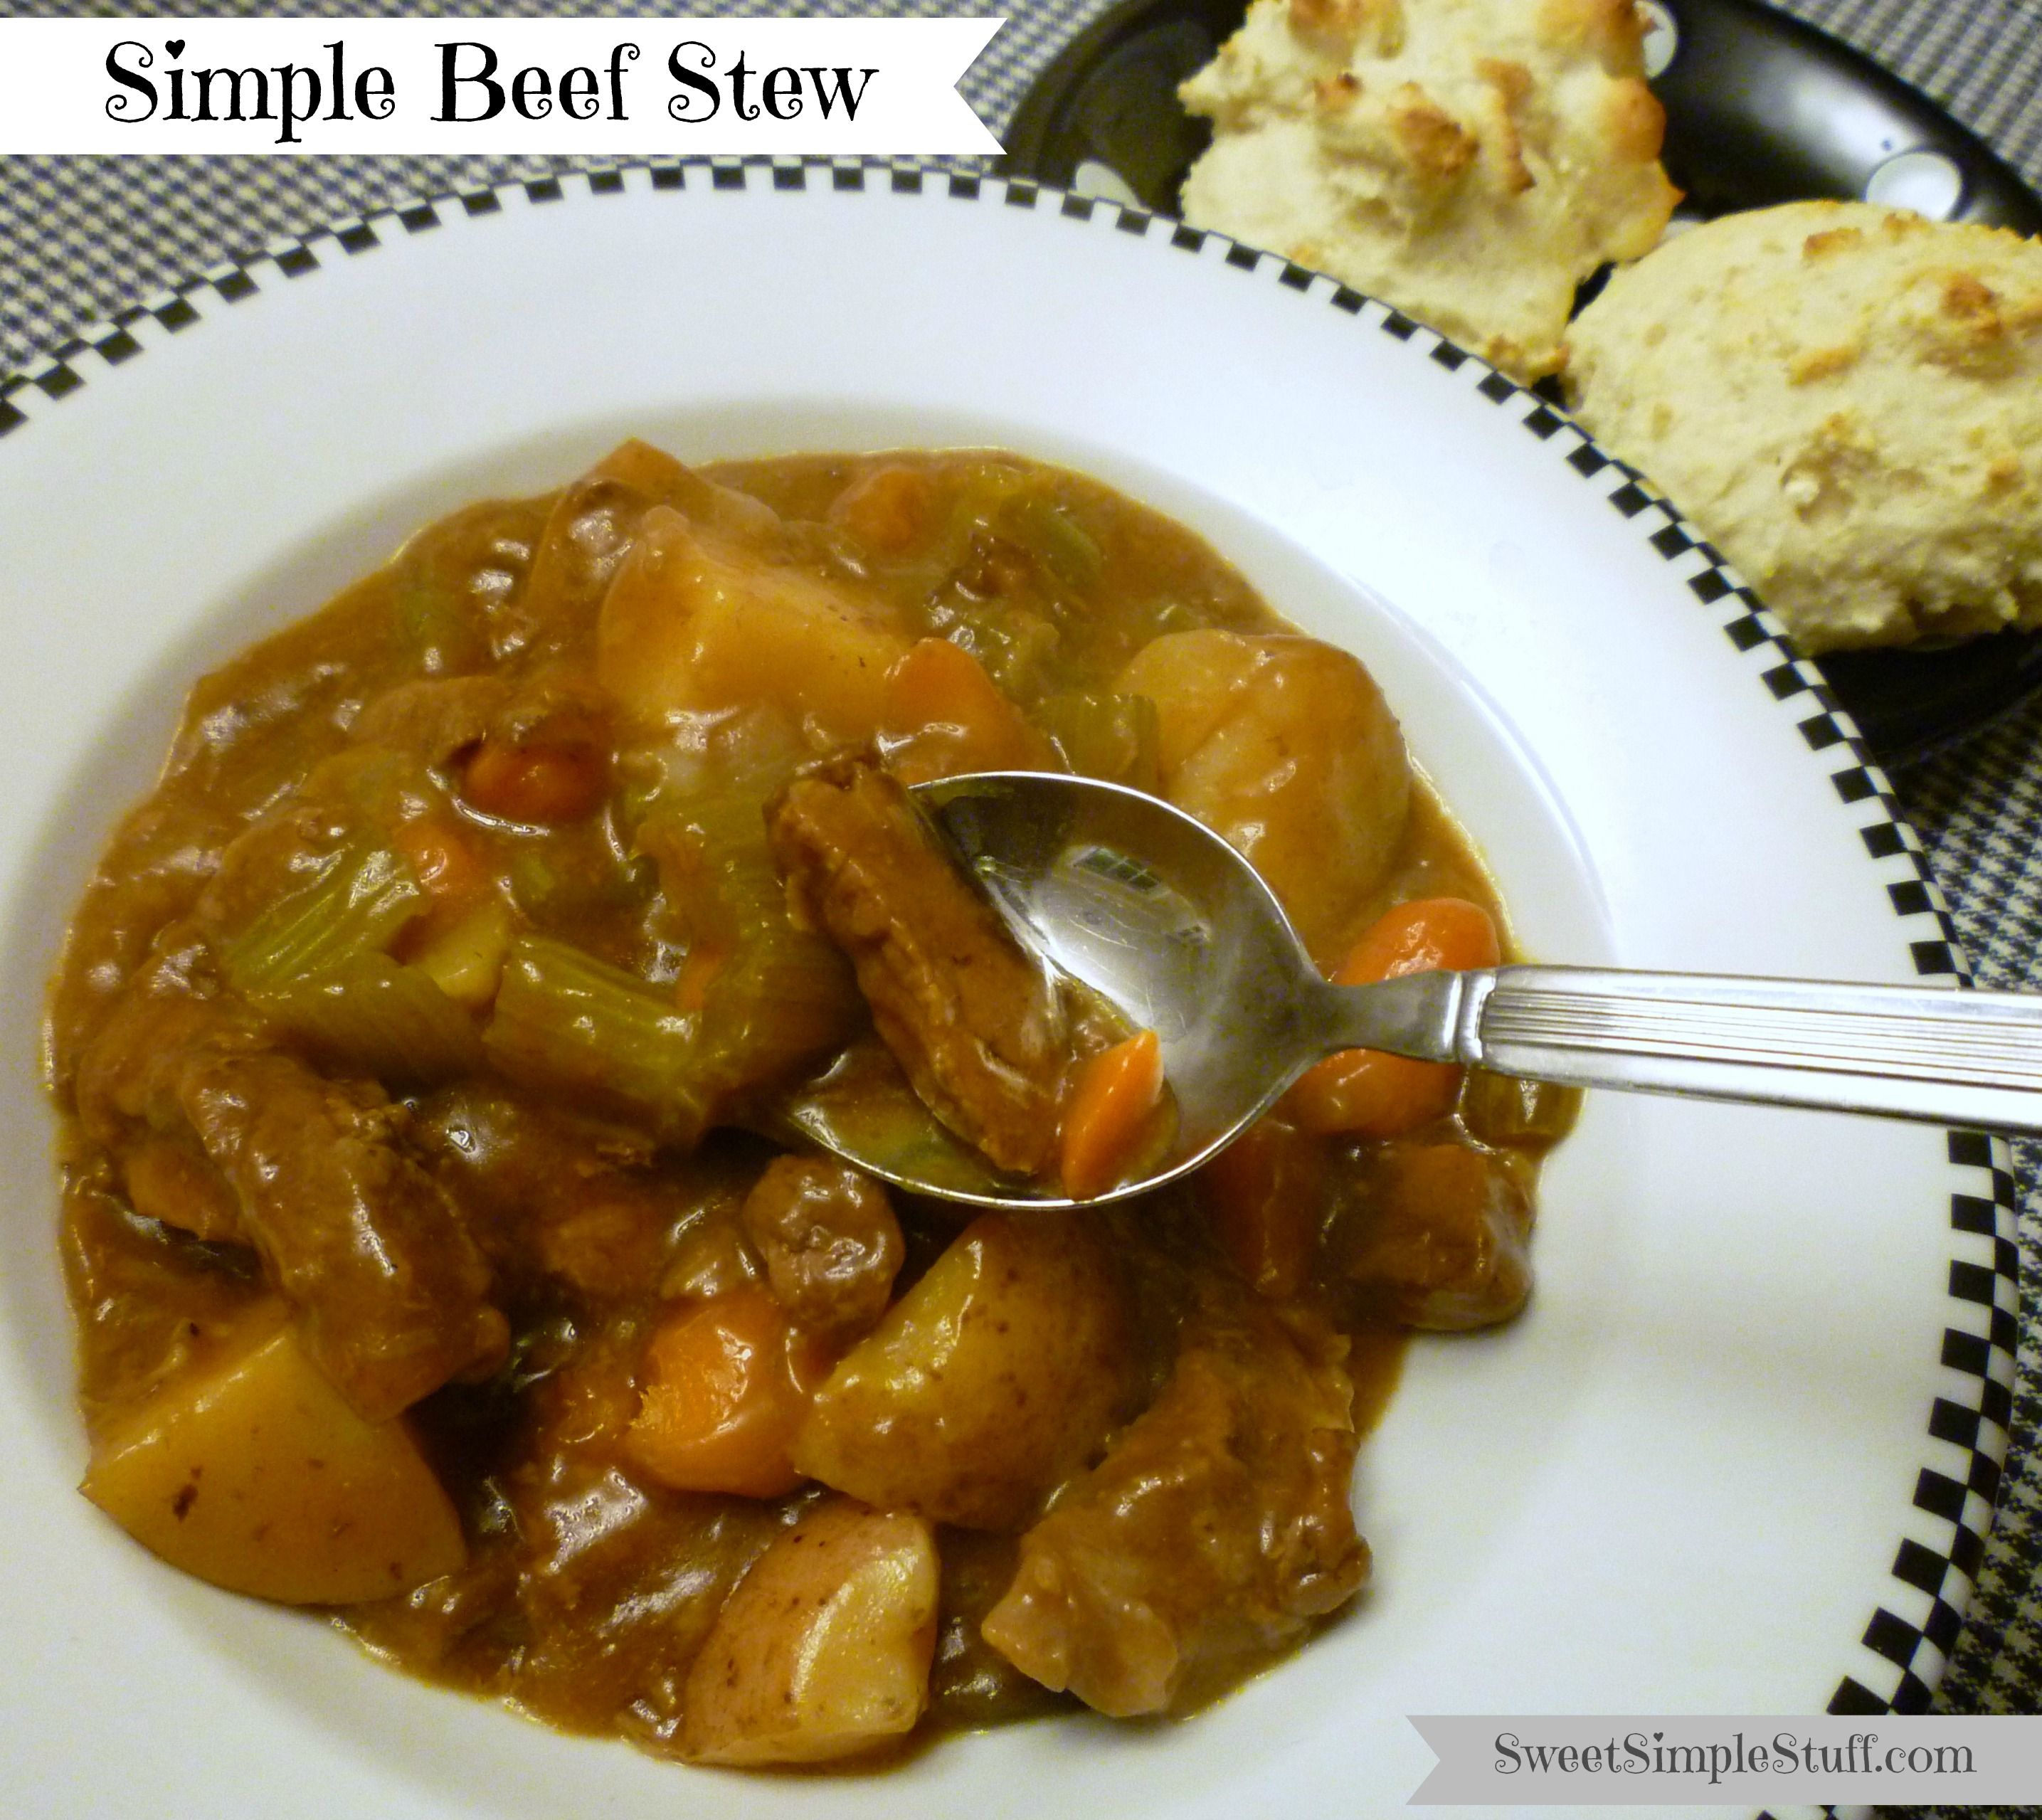 Simple Oven Beef Stew -  this one brings back memories with the addition of Liptons Onion Soup Mix and Cream of Mushroom Soup.